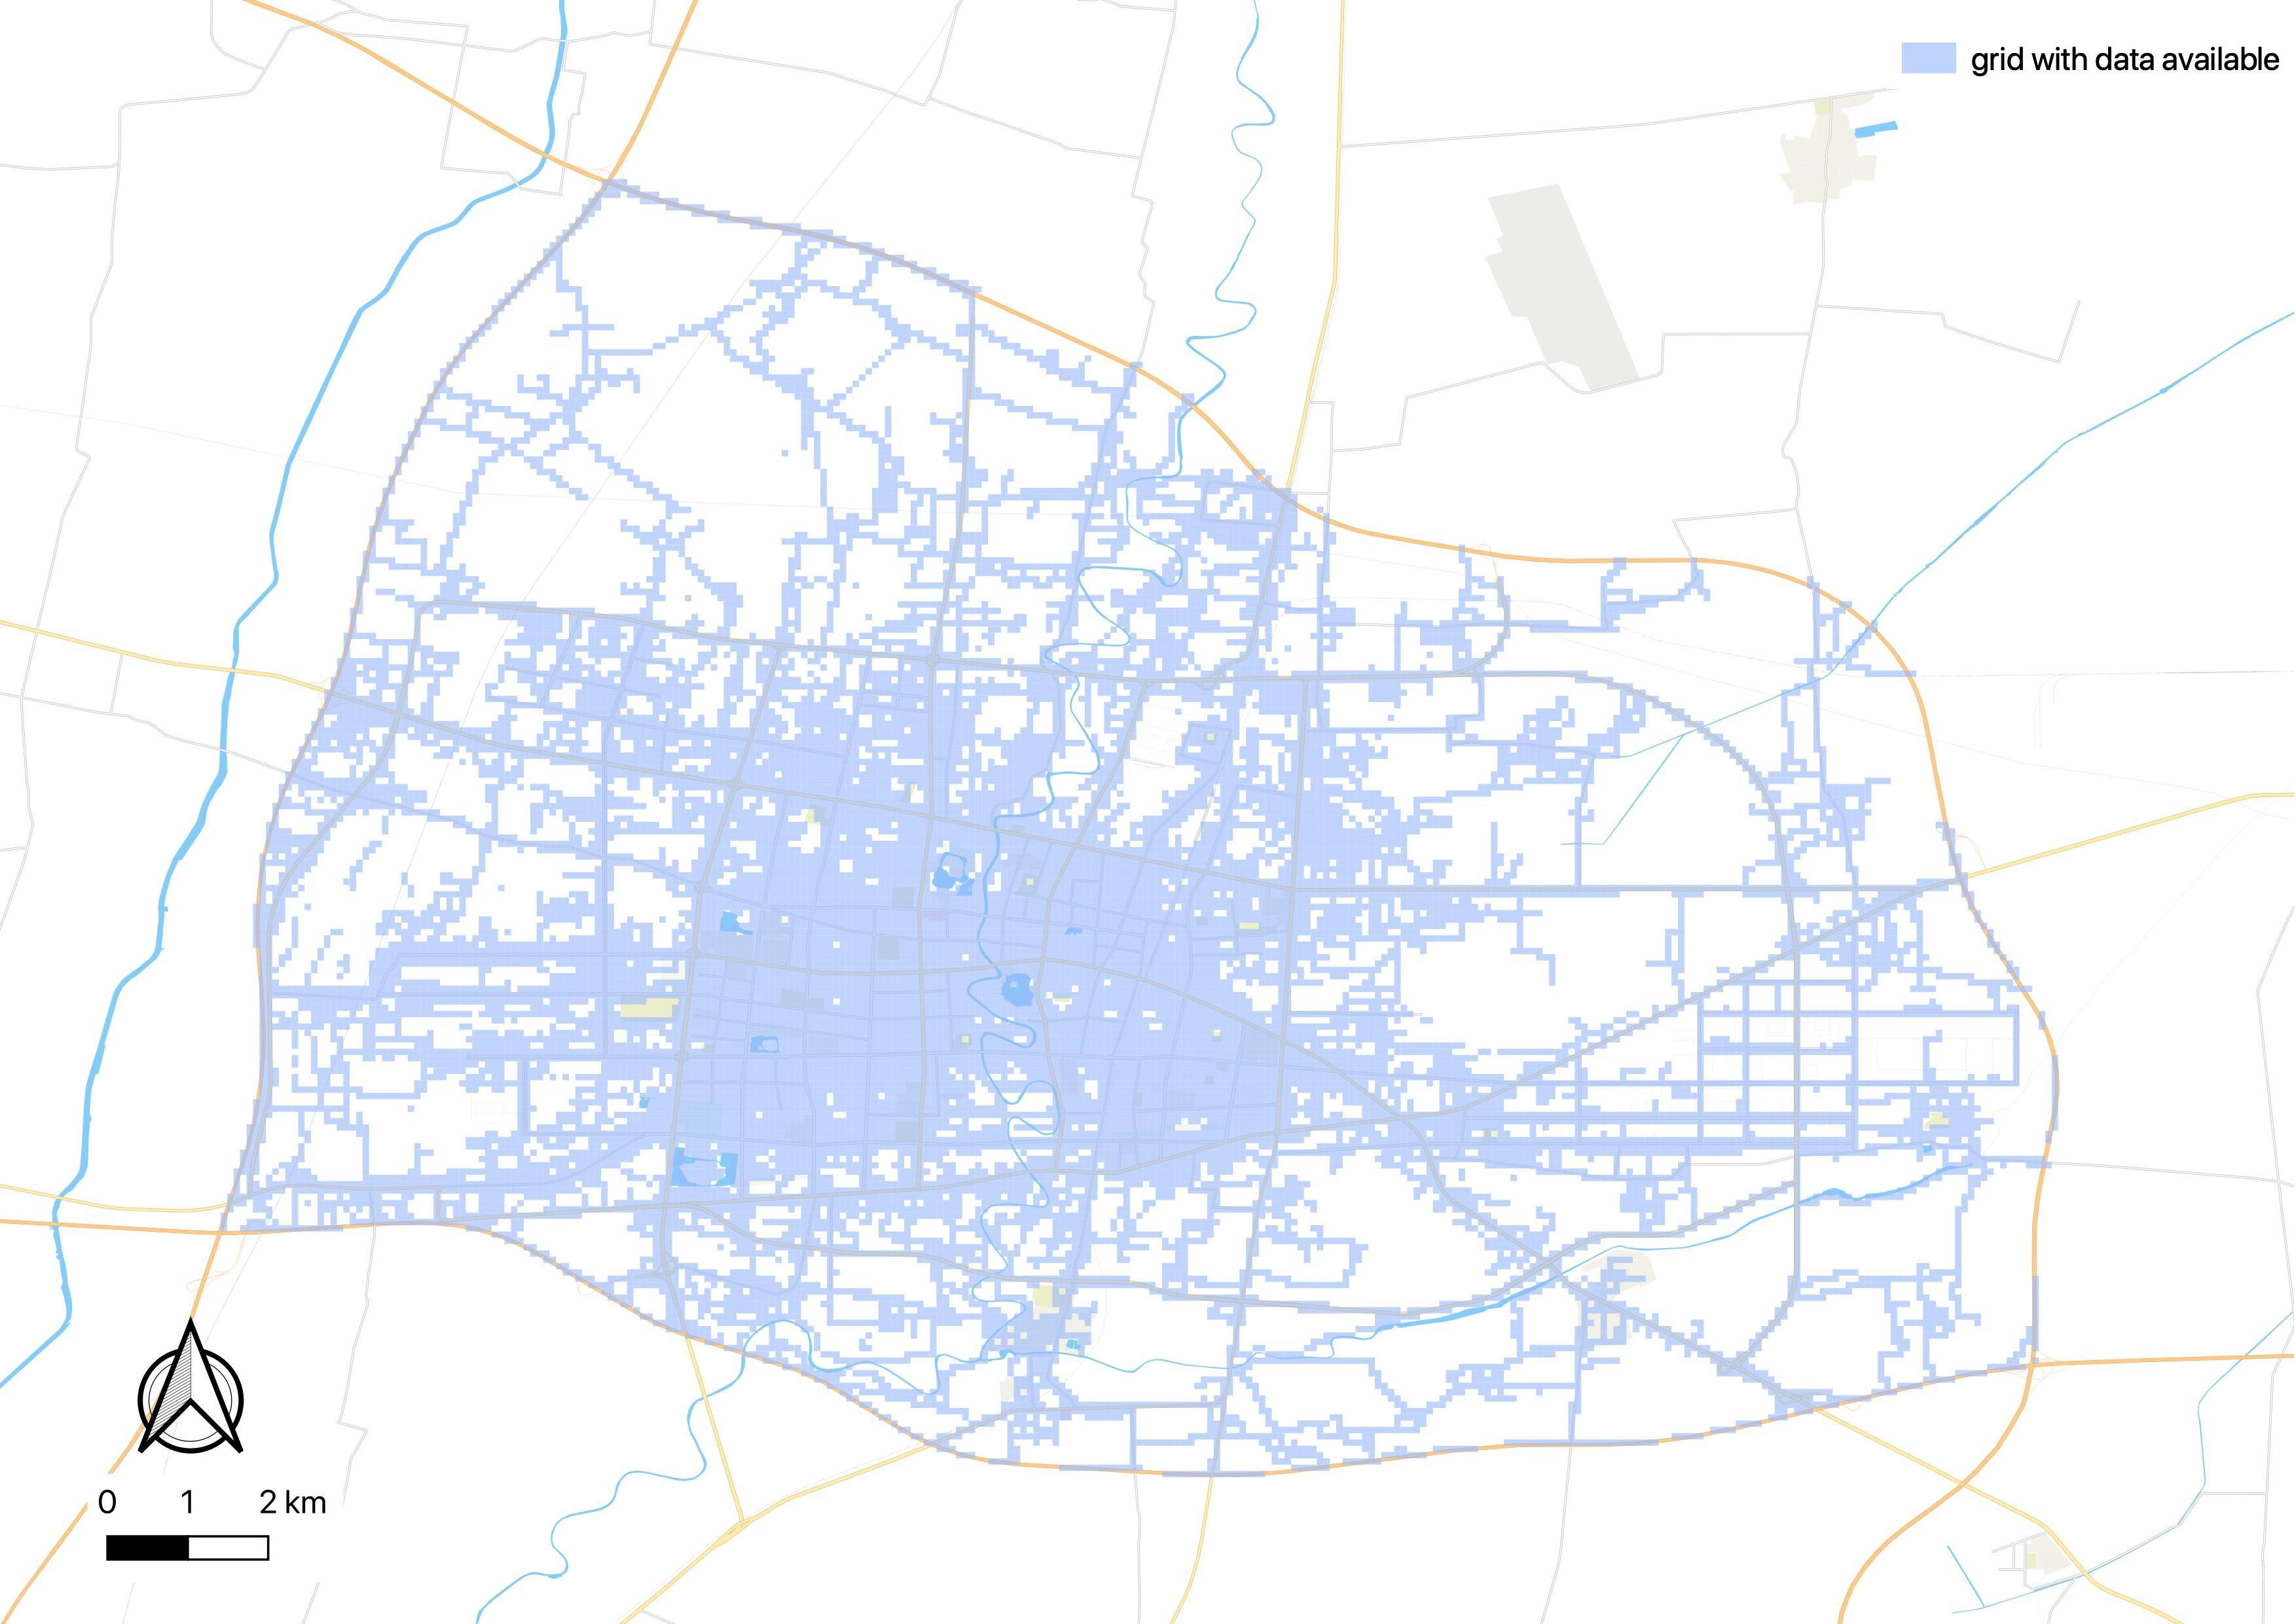 Spatial coverage of the taxi monitoring system.